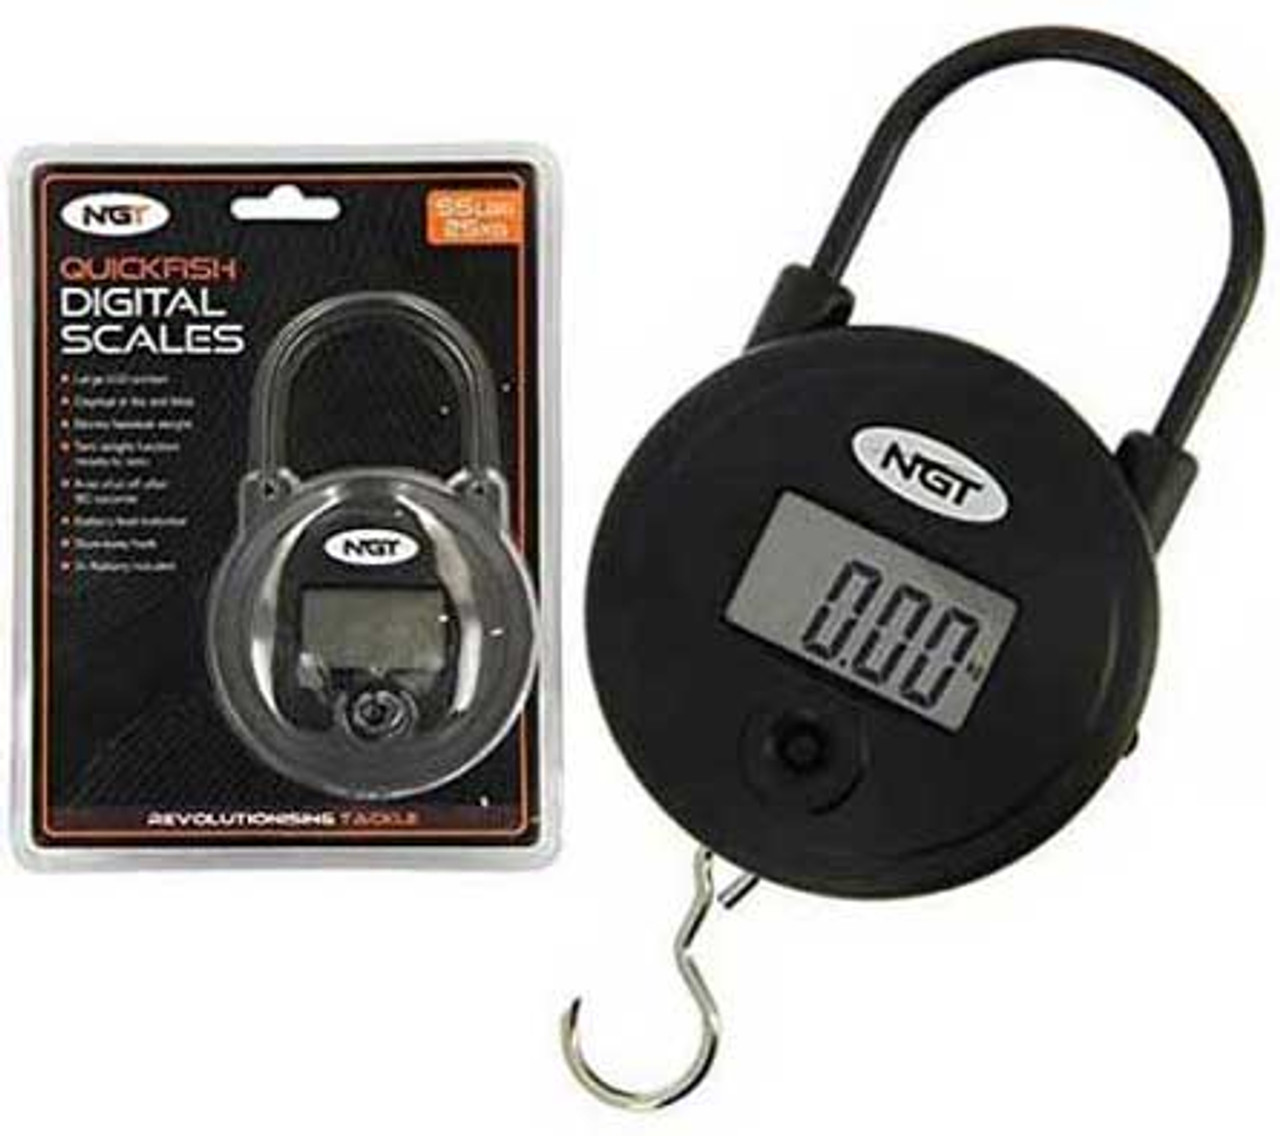 NGT Quickfish Digital Weigh Scales 55lb/25kg